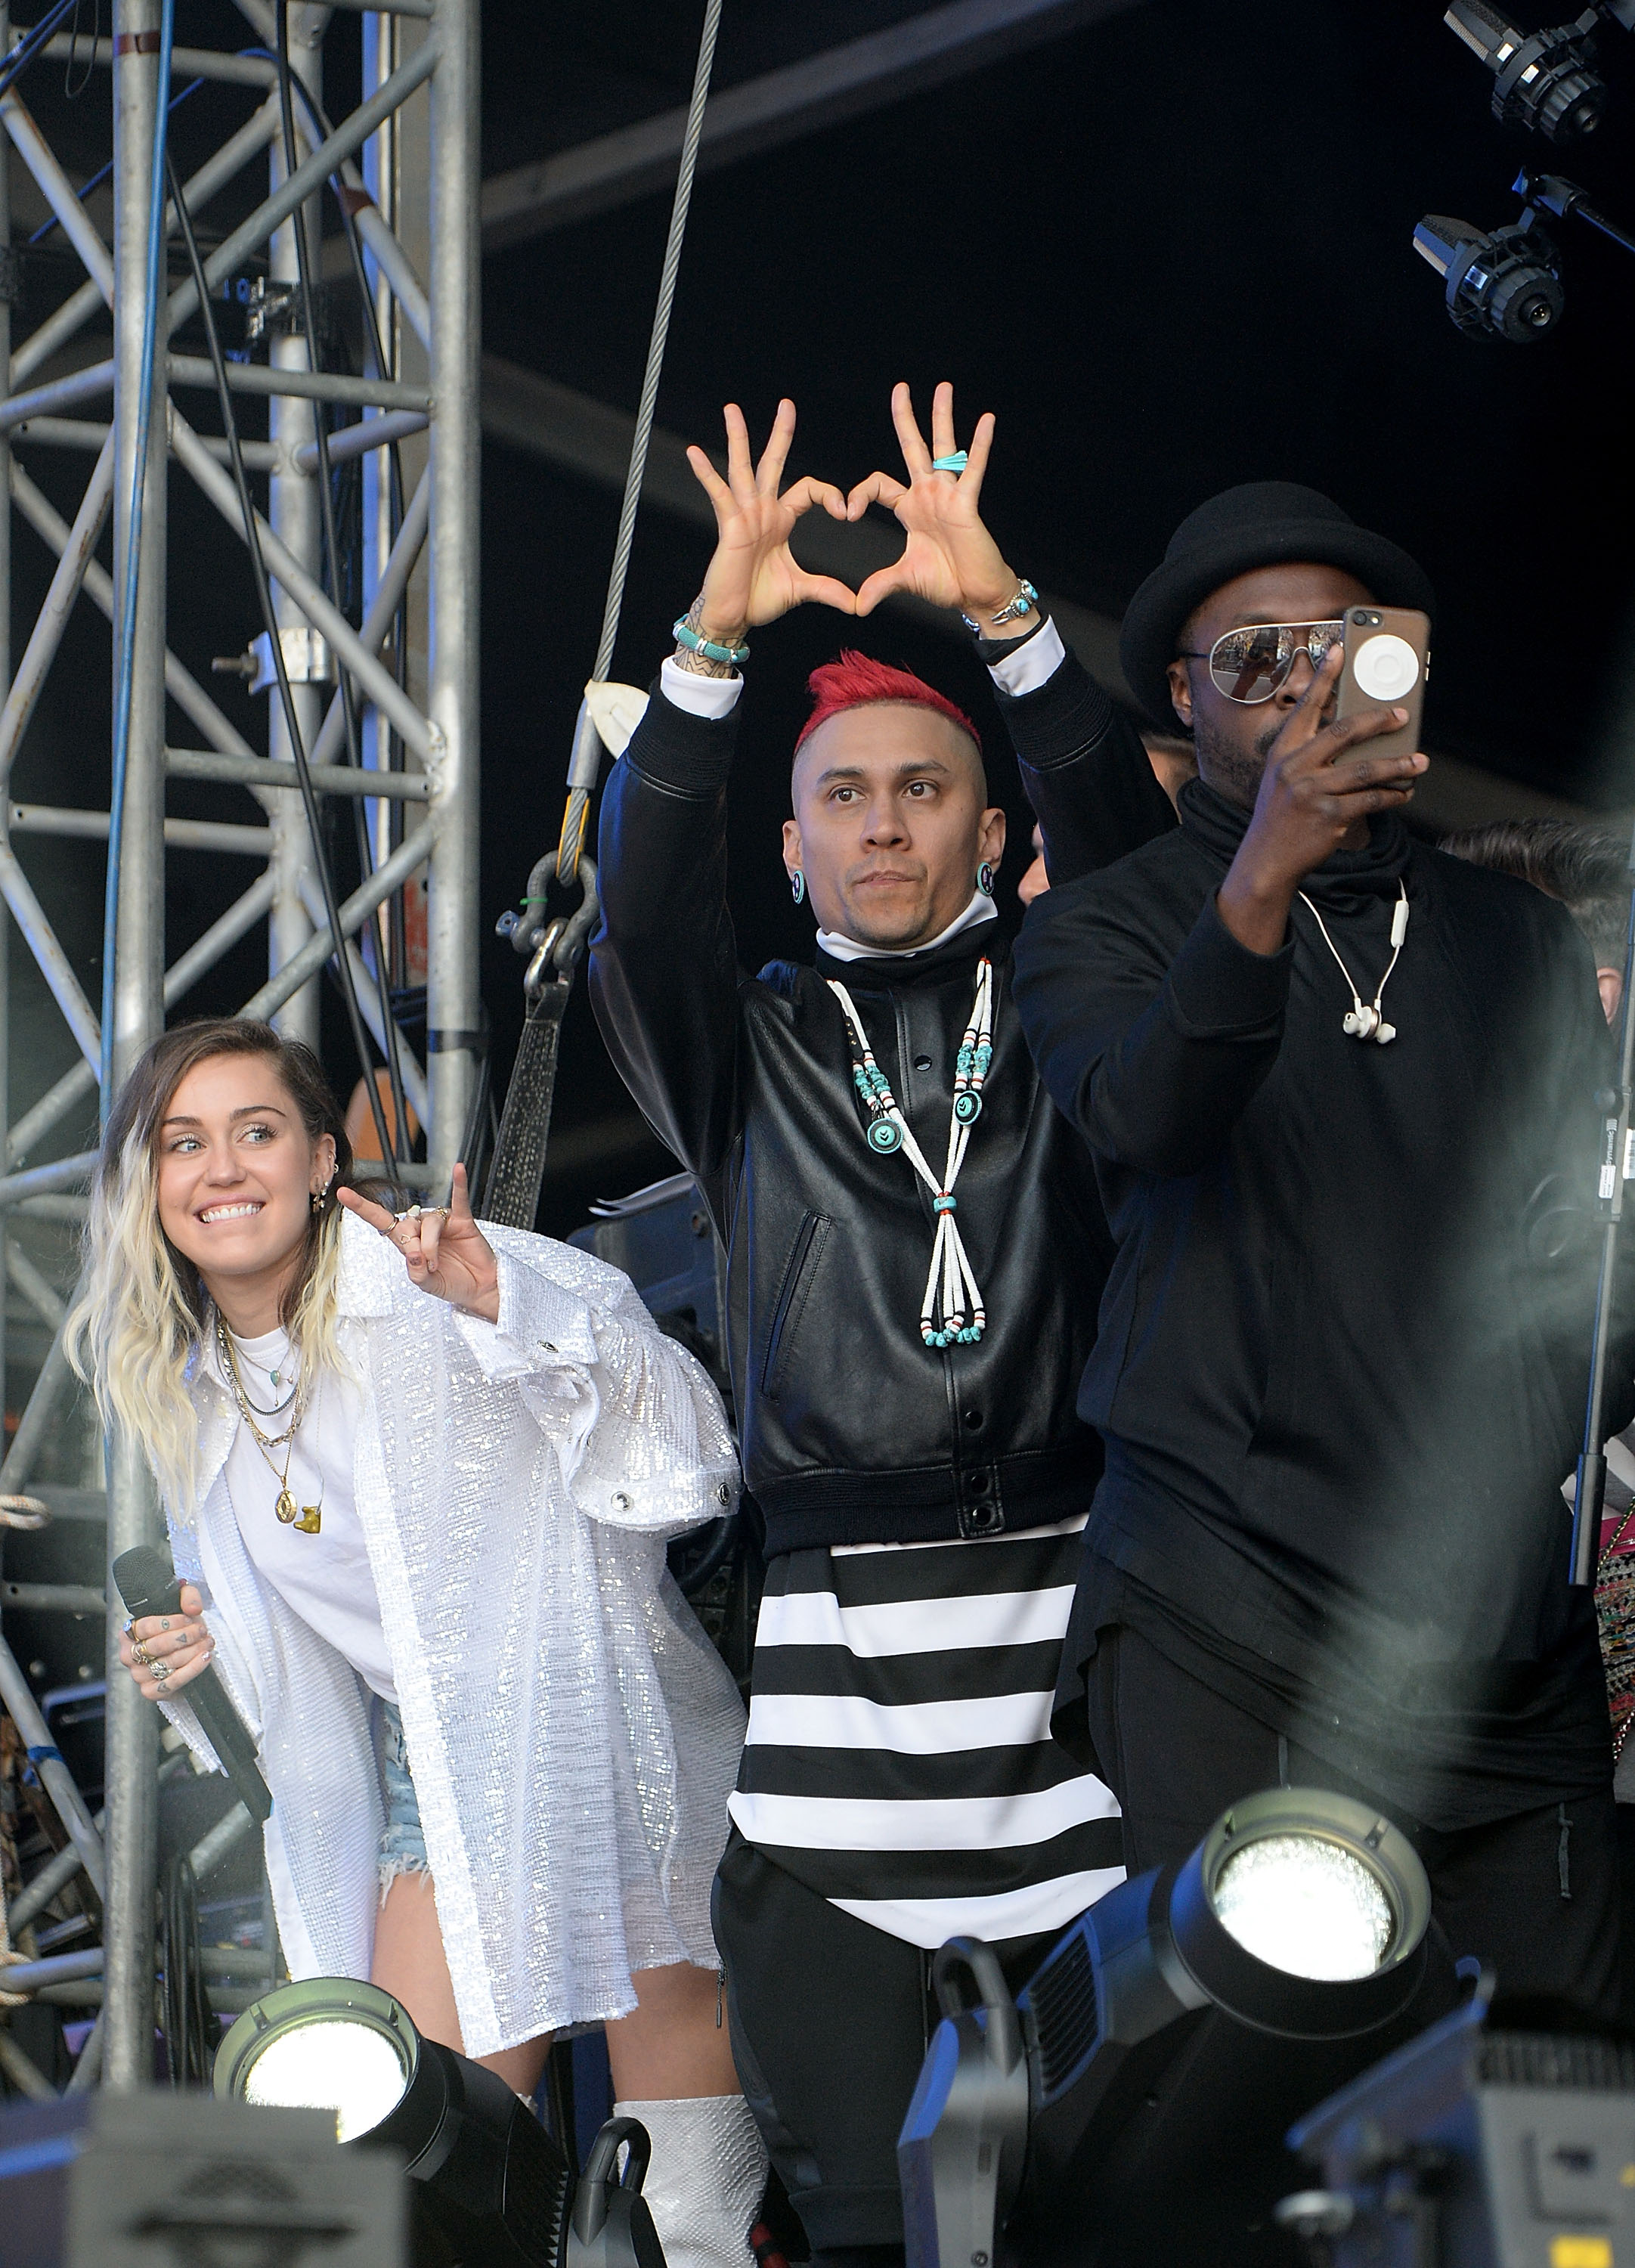 Miley Cyrus, Taboo and will.i.am of The Black Eyed